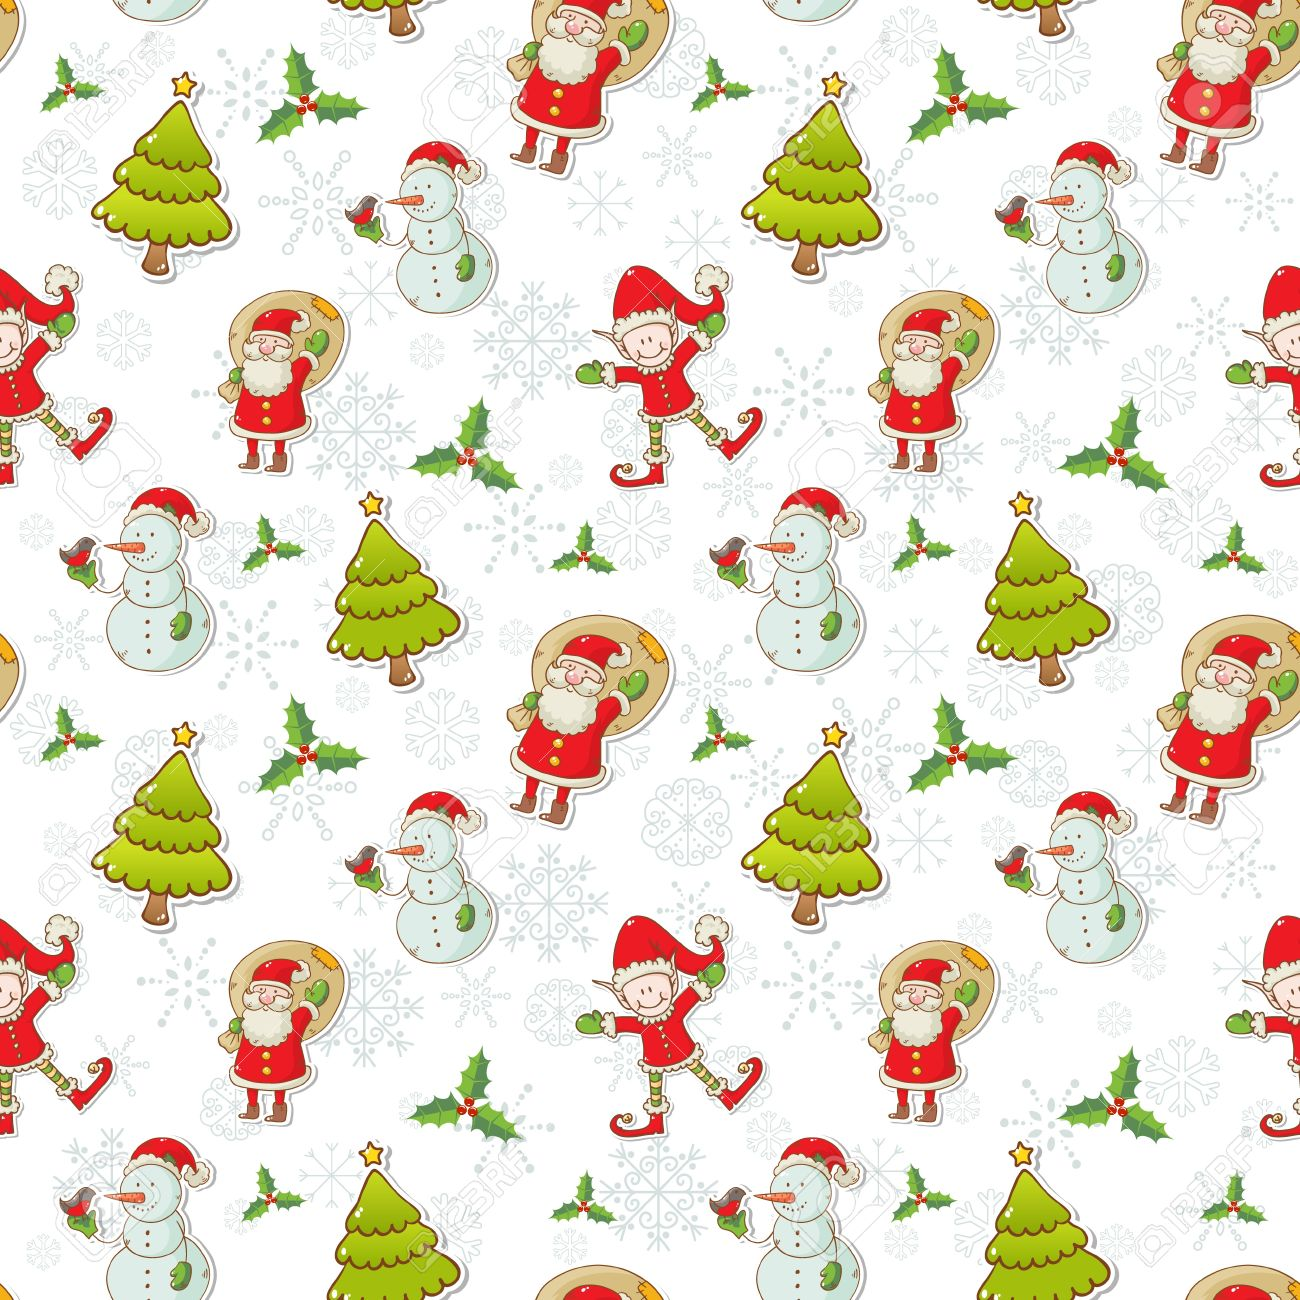 Christmas cartoon characters seamless pattern with Santa Claus, elf and snowman on winter snowflakes background Stock Vector - 16469770